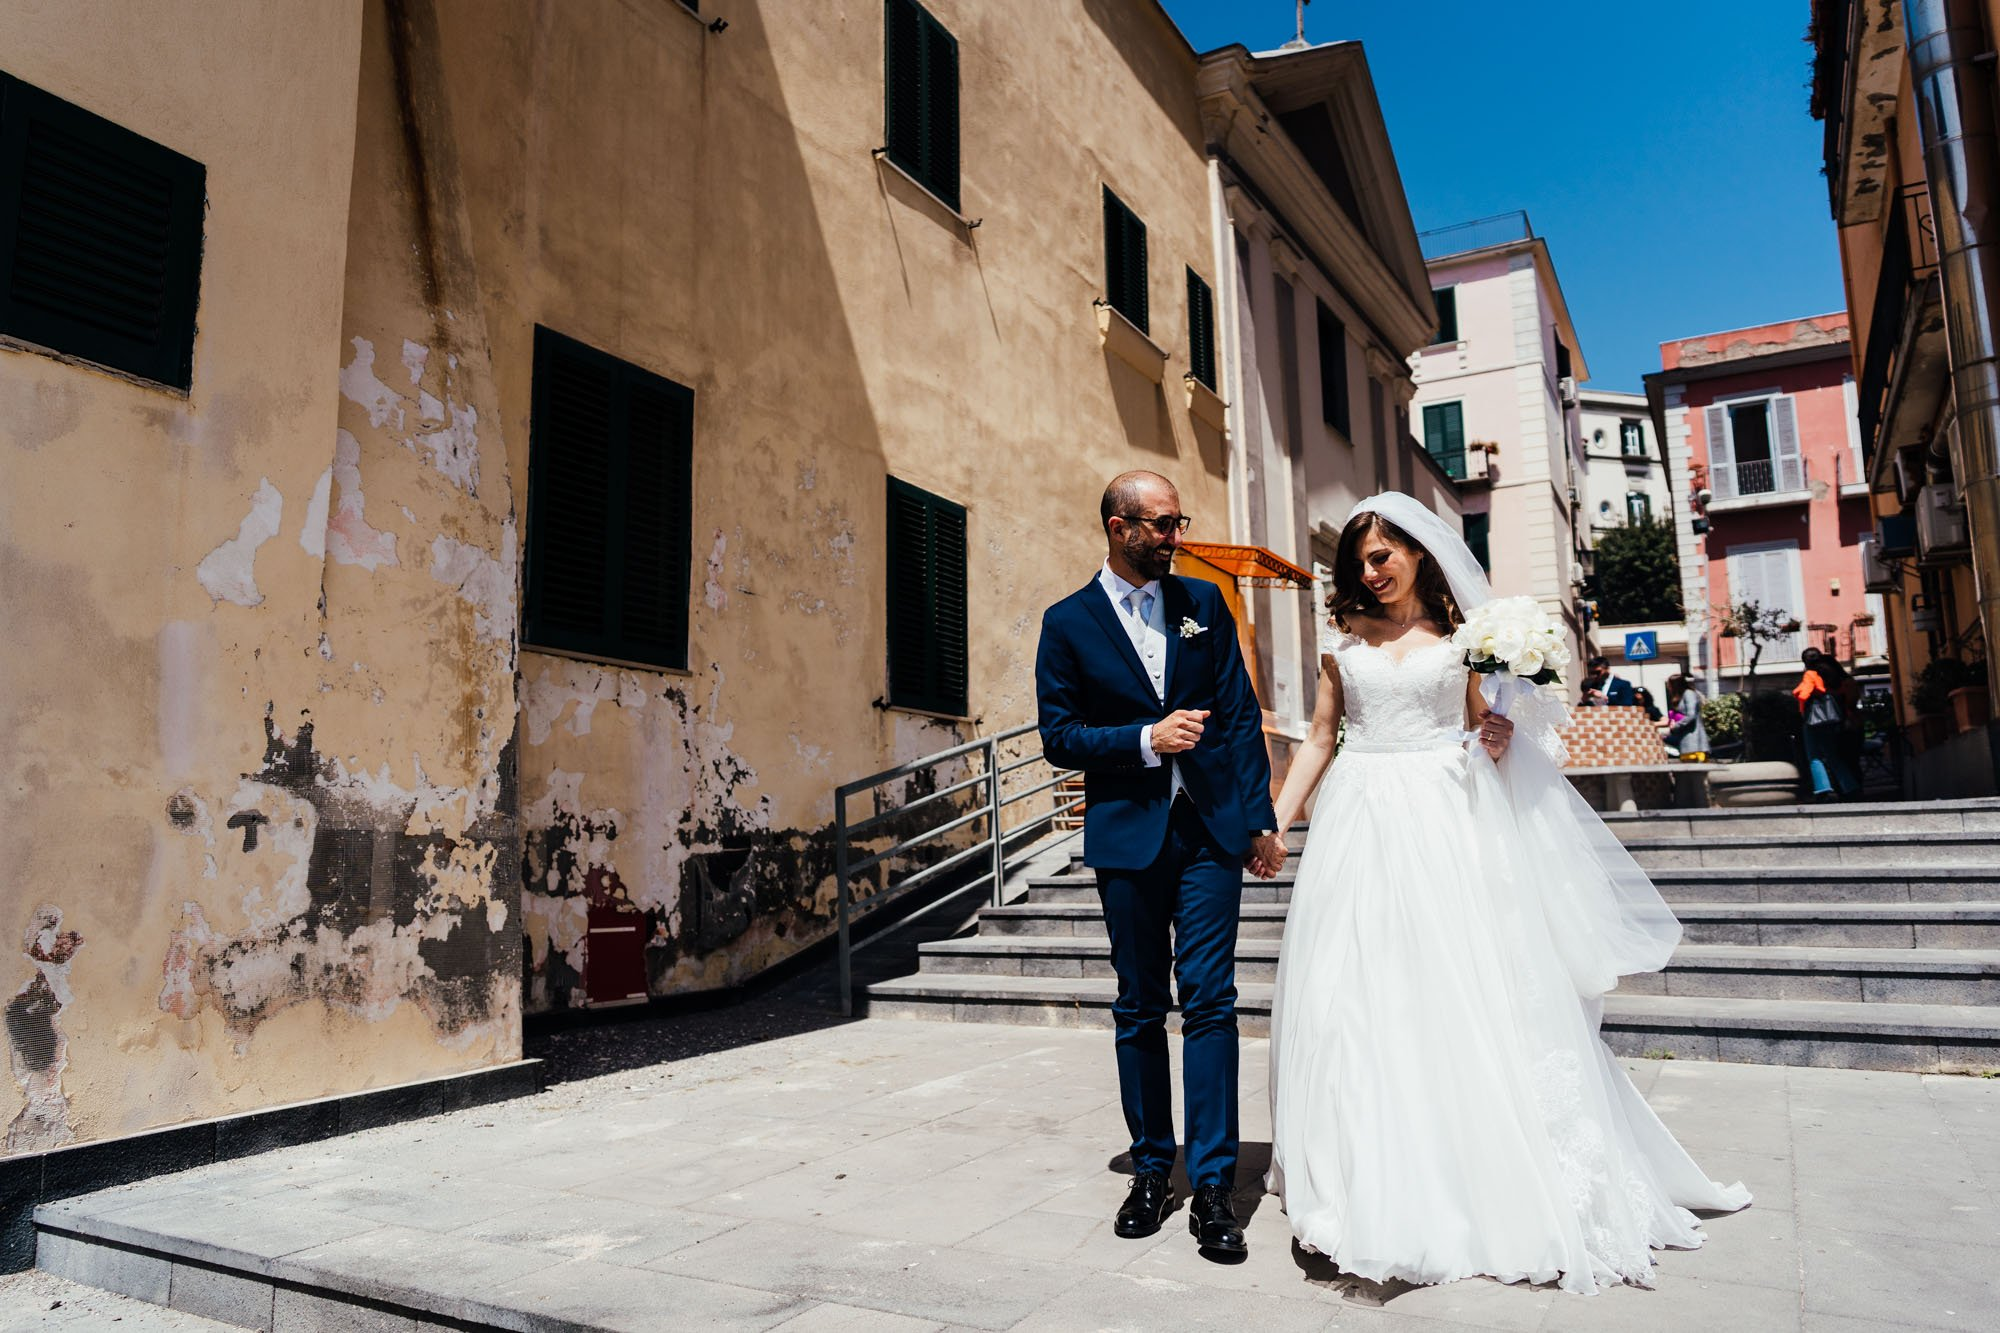 wedding-in-italy-mary-mimmo-37